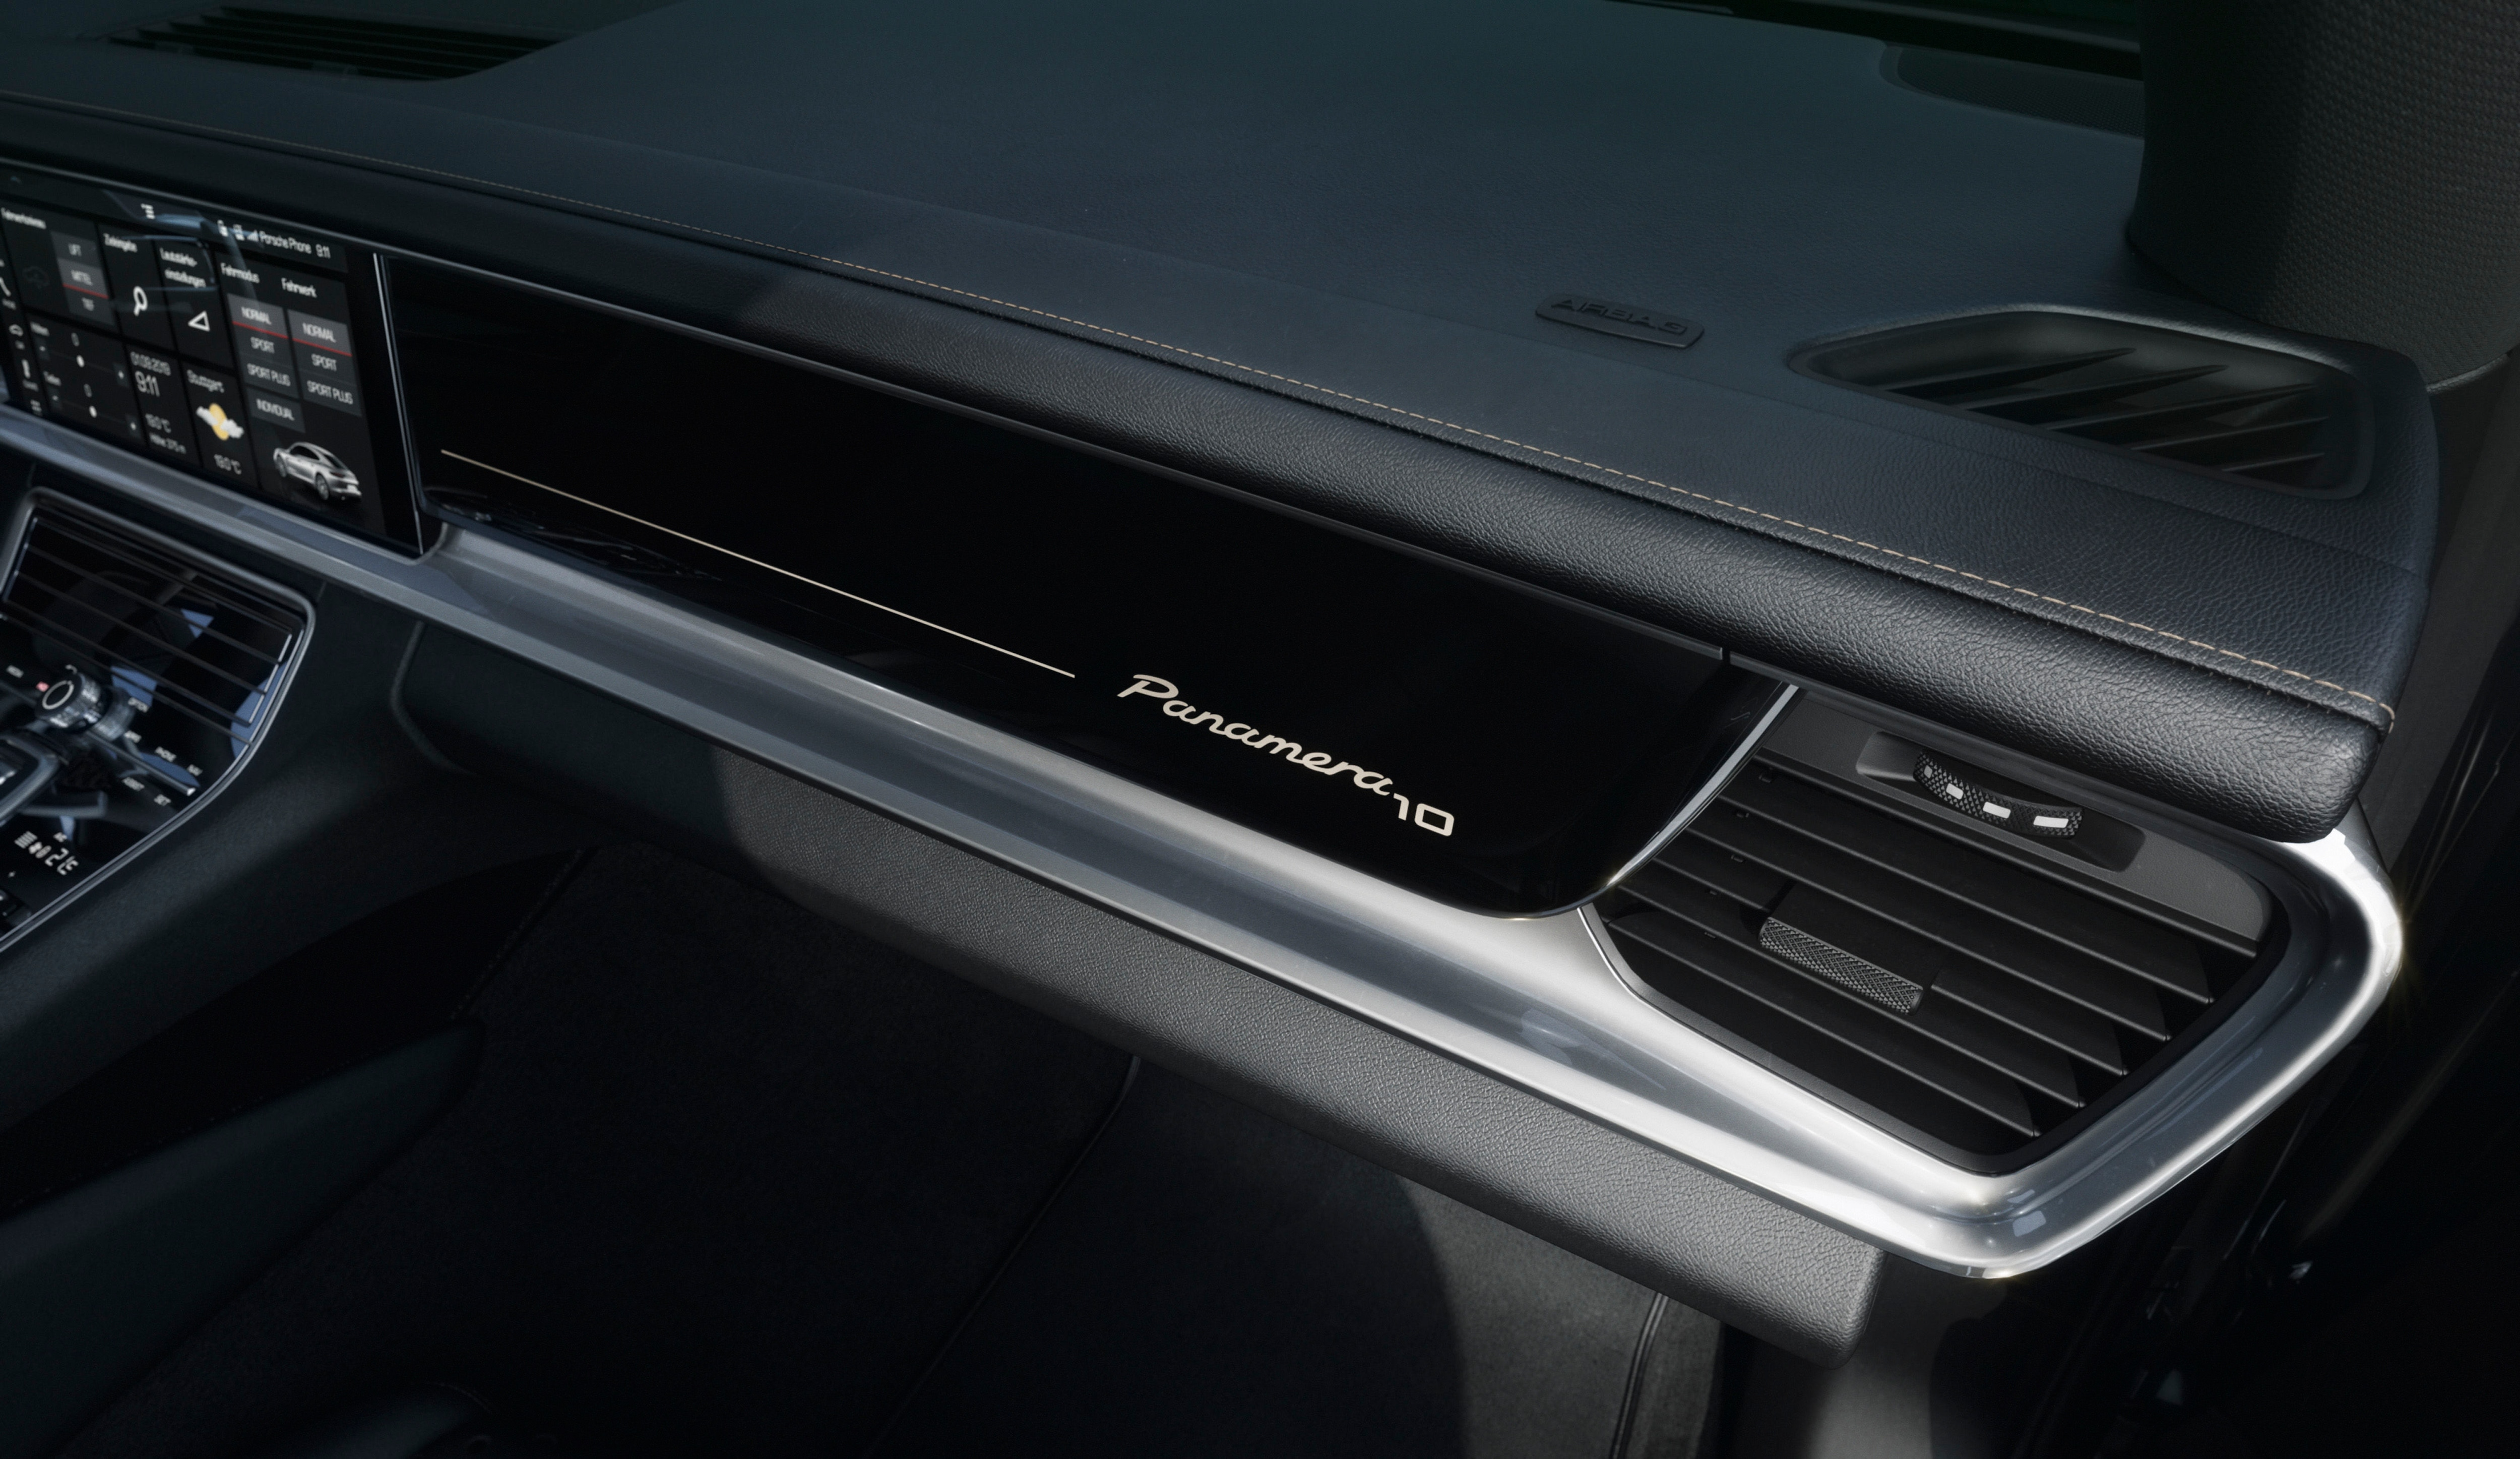 The logos also adorn the front passenger trim panel. In terms of the additional comfort and safety features, the special edition of Panamera gets LED matrix headlights including PDLS Plus, Lane Change Assist, Park Assist, including a reversing camera.